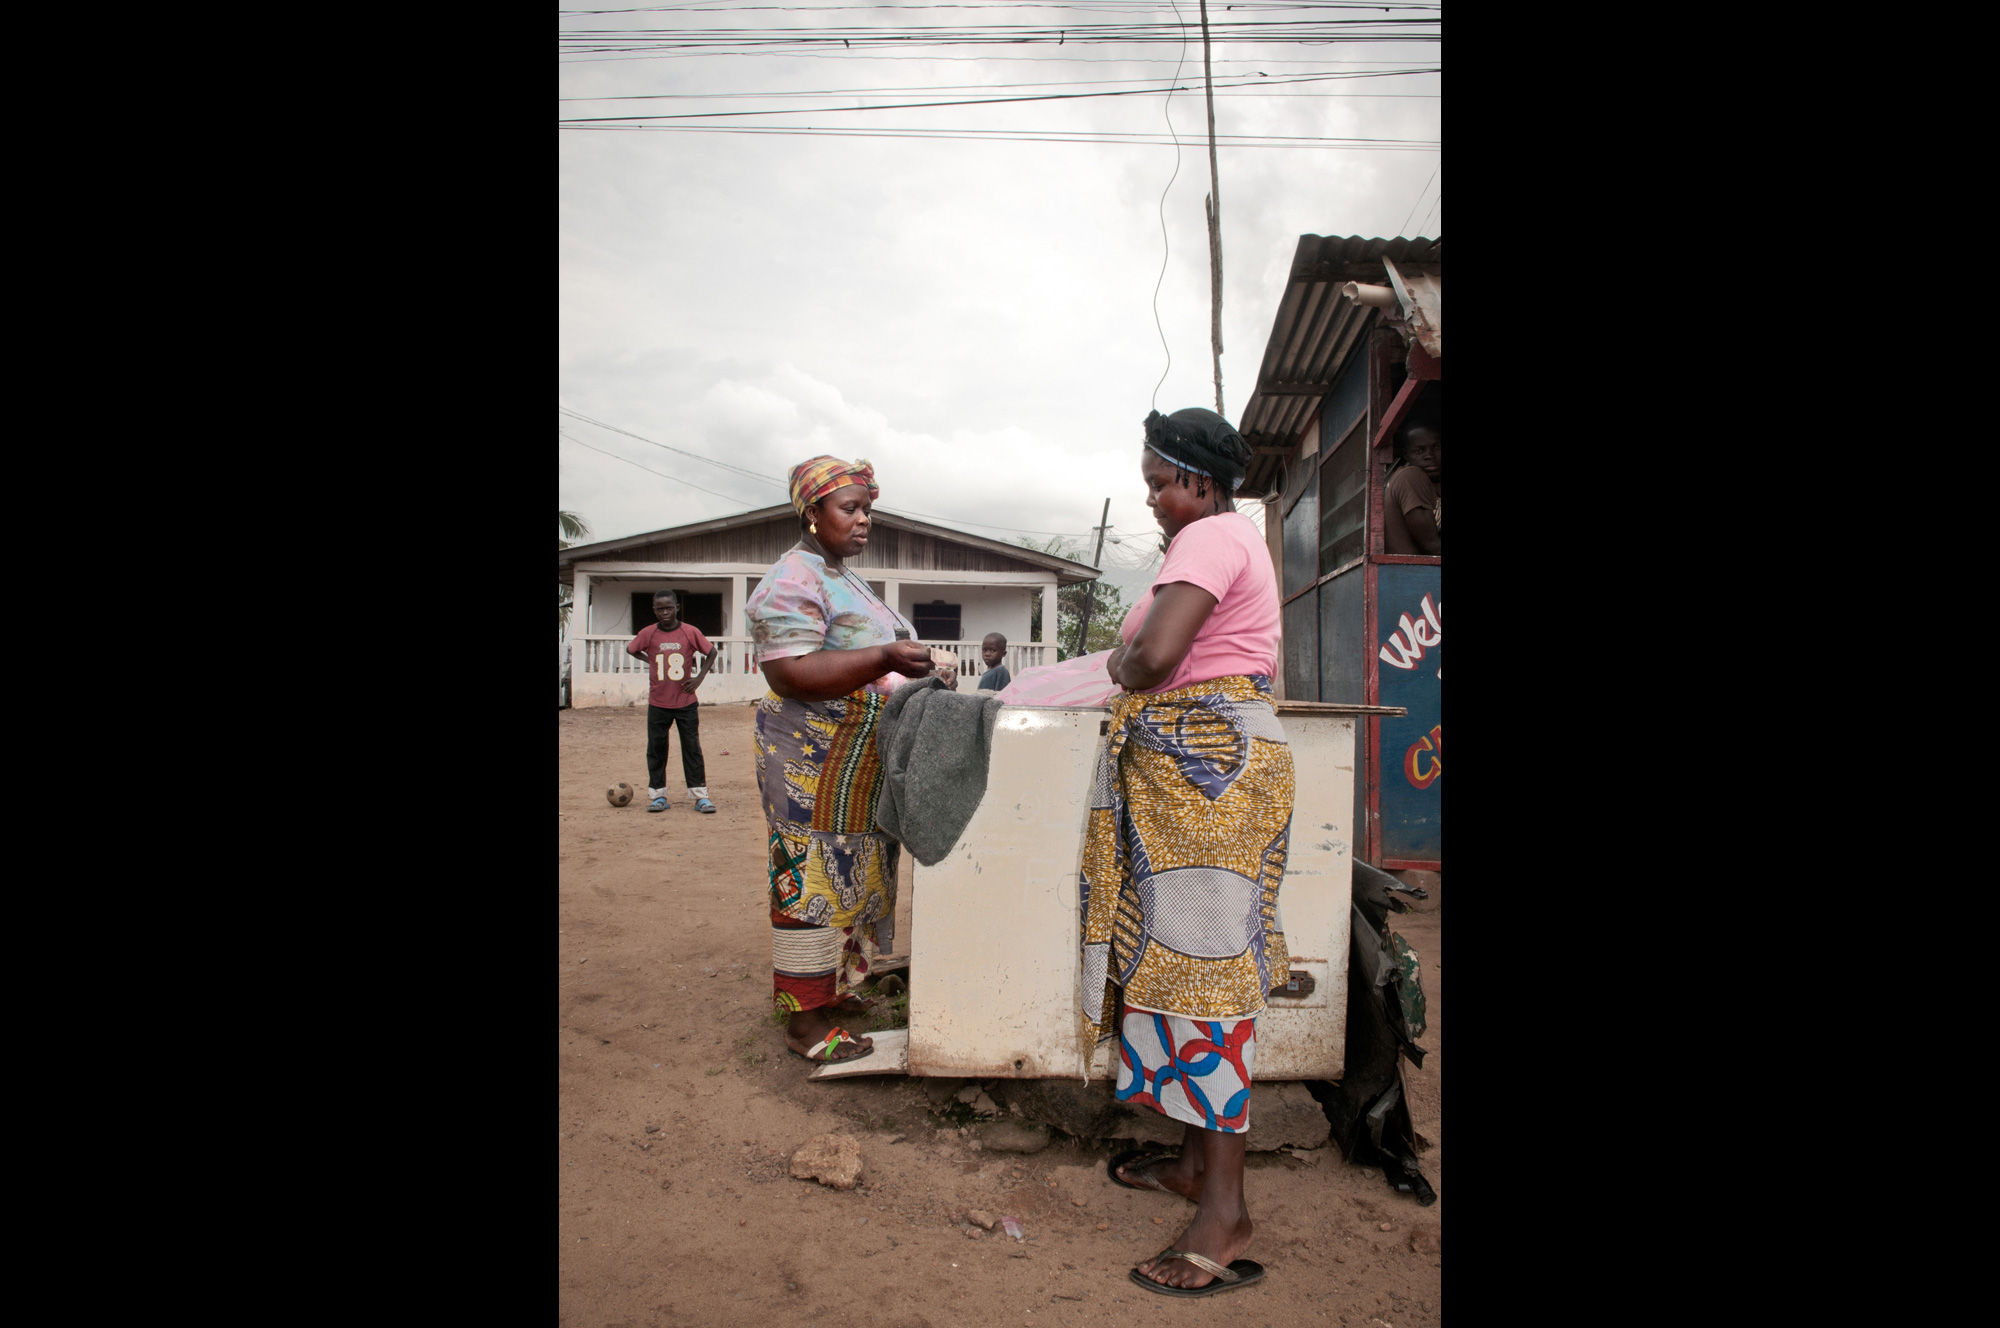 work & youth – woman selling ice along the road, monrovia, liberia